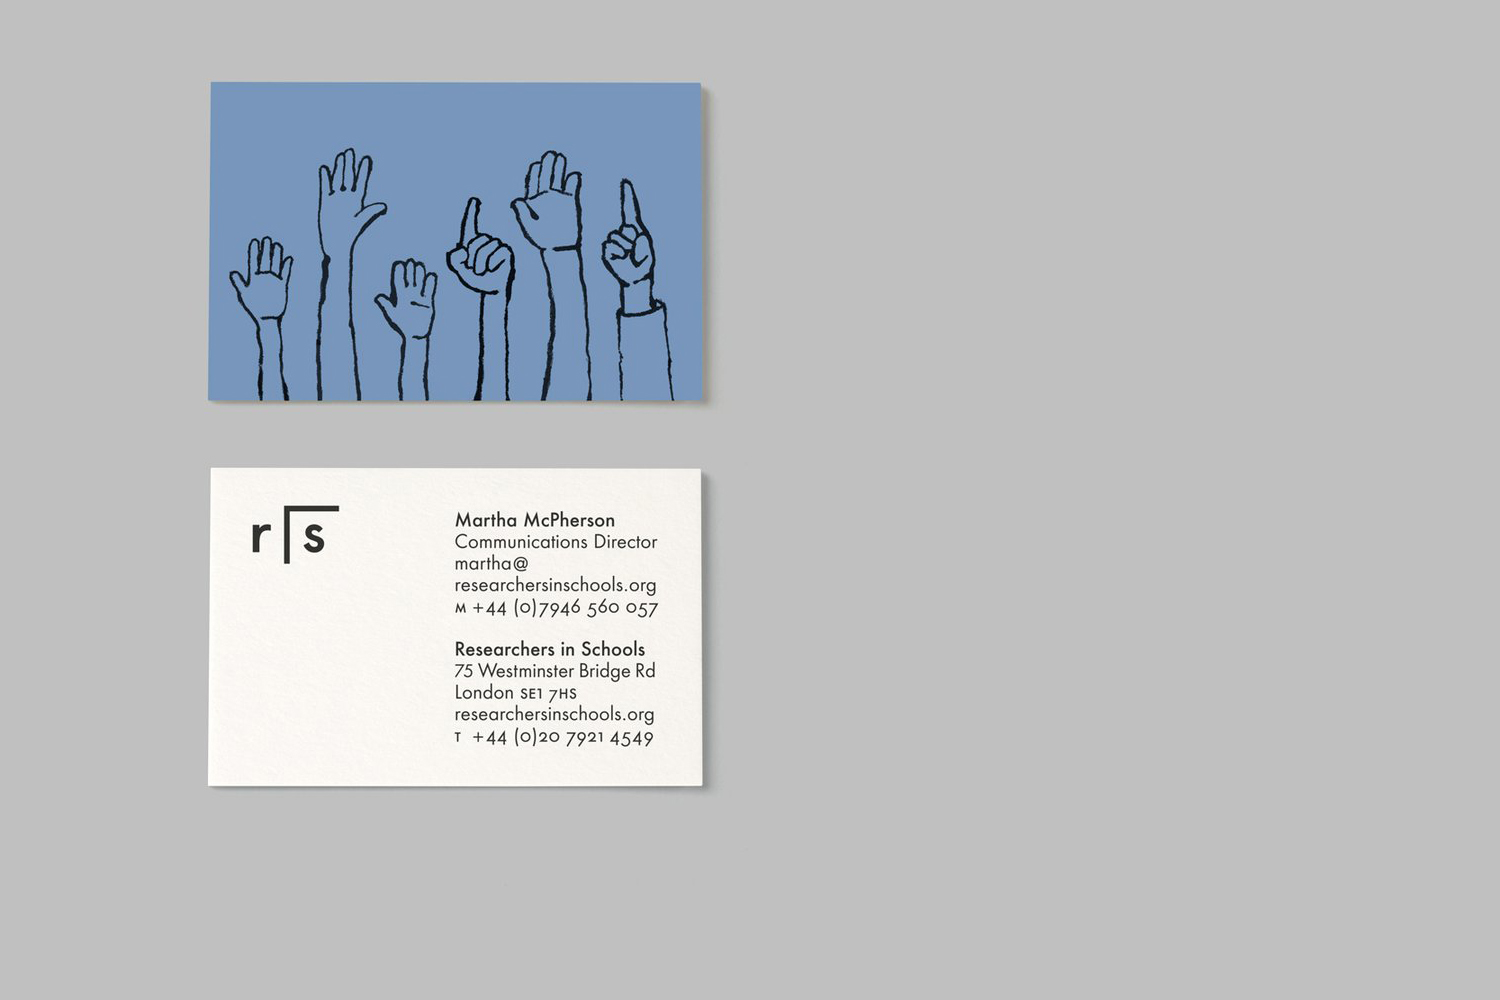 Illustrated business cards for Researchers In Schools designed by Paul Belford Ltd.